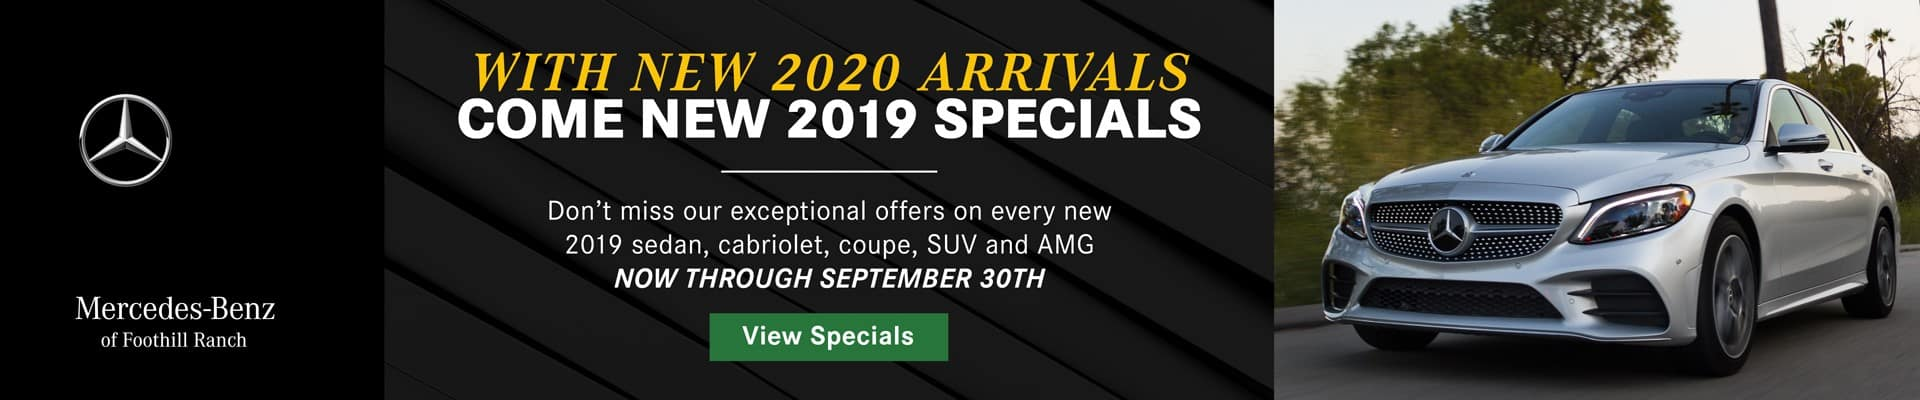 View Our Specials Banner